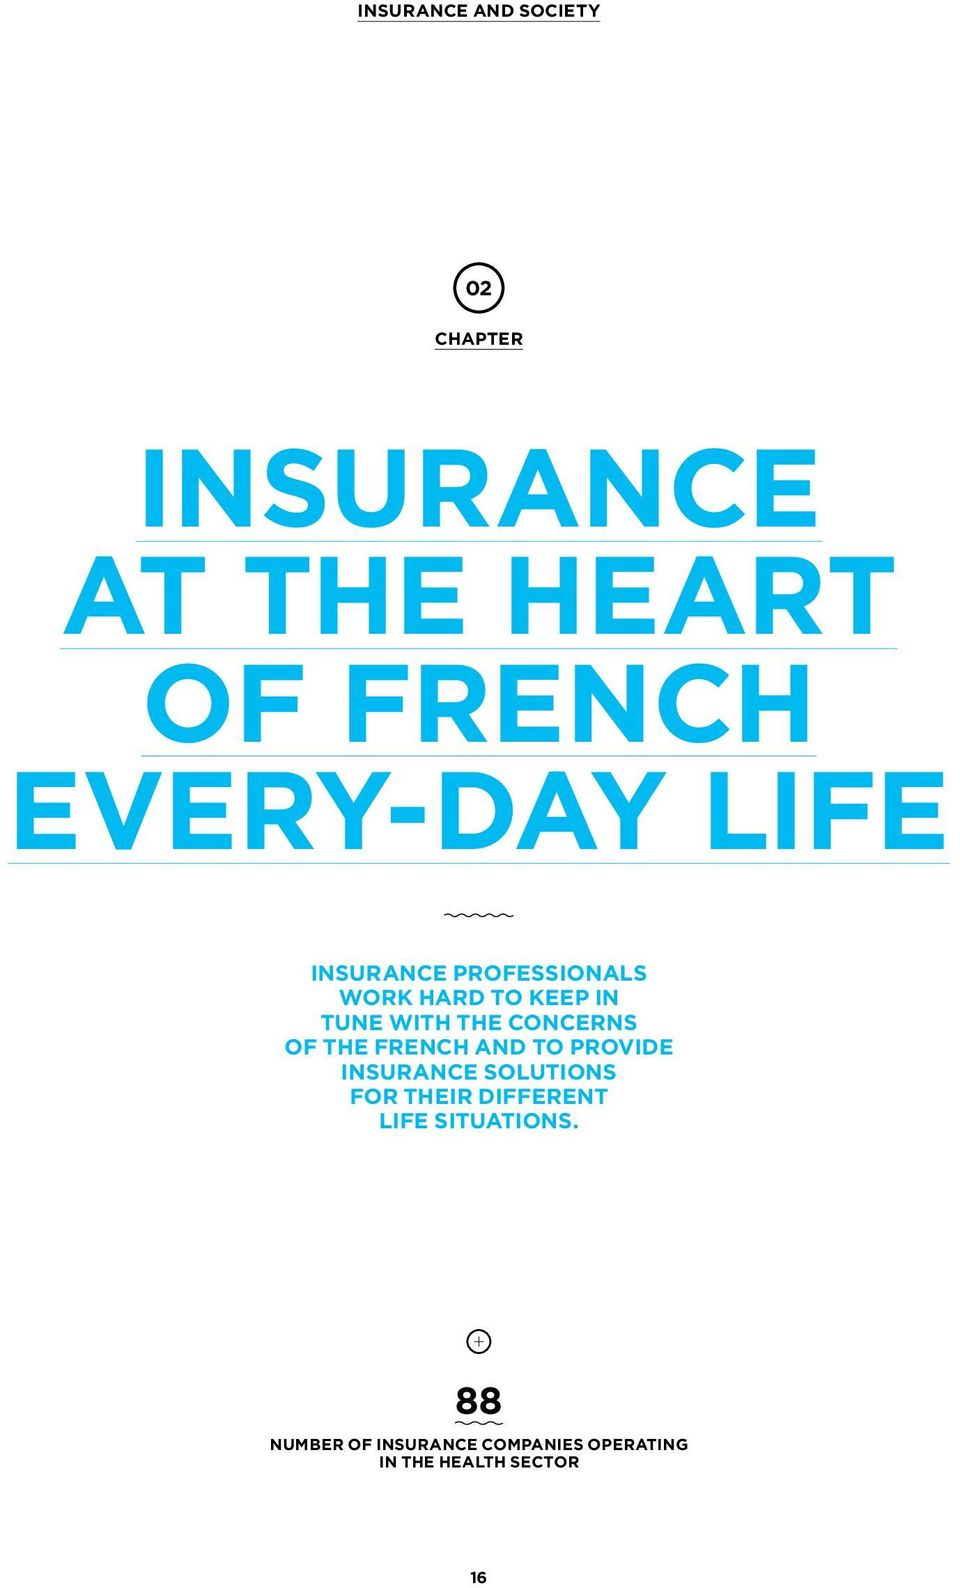 THE FRENCH AND TO PROVIDE INSURANCE SOLUTIONS FOR THEIR DIFFERENT LIFE